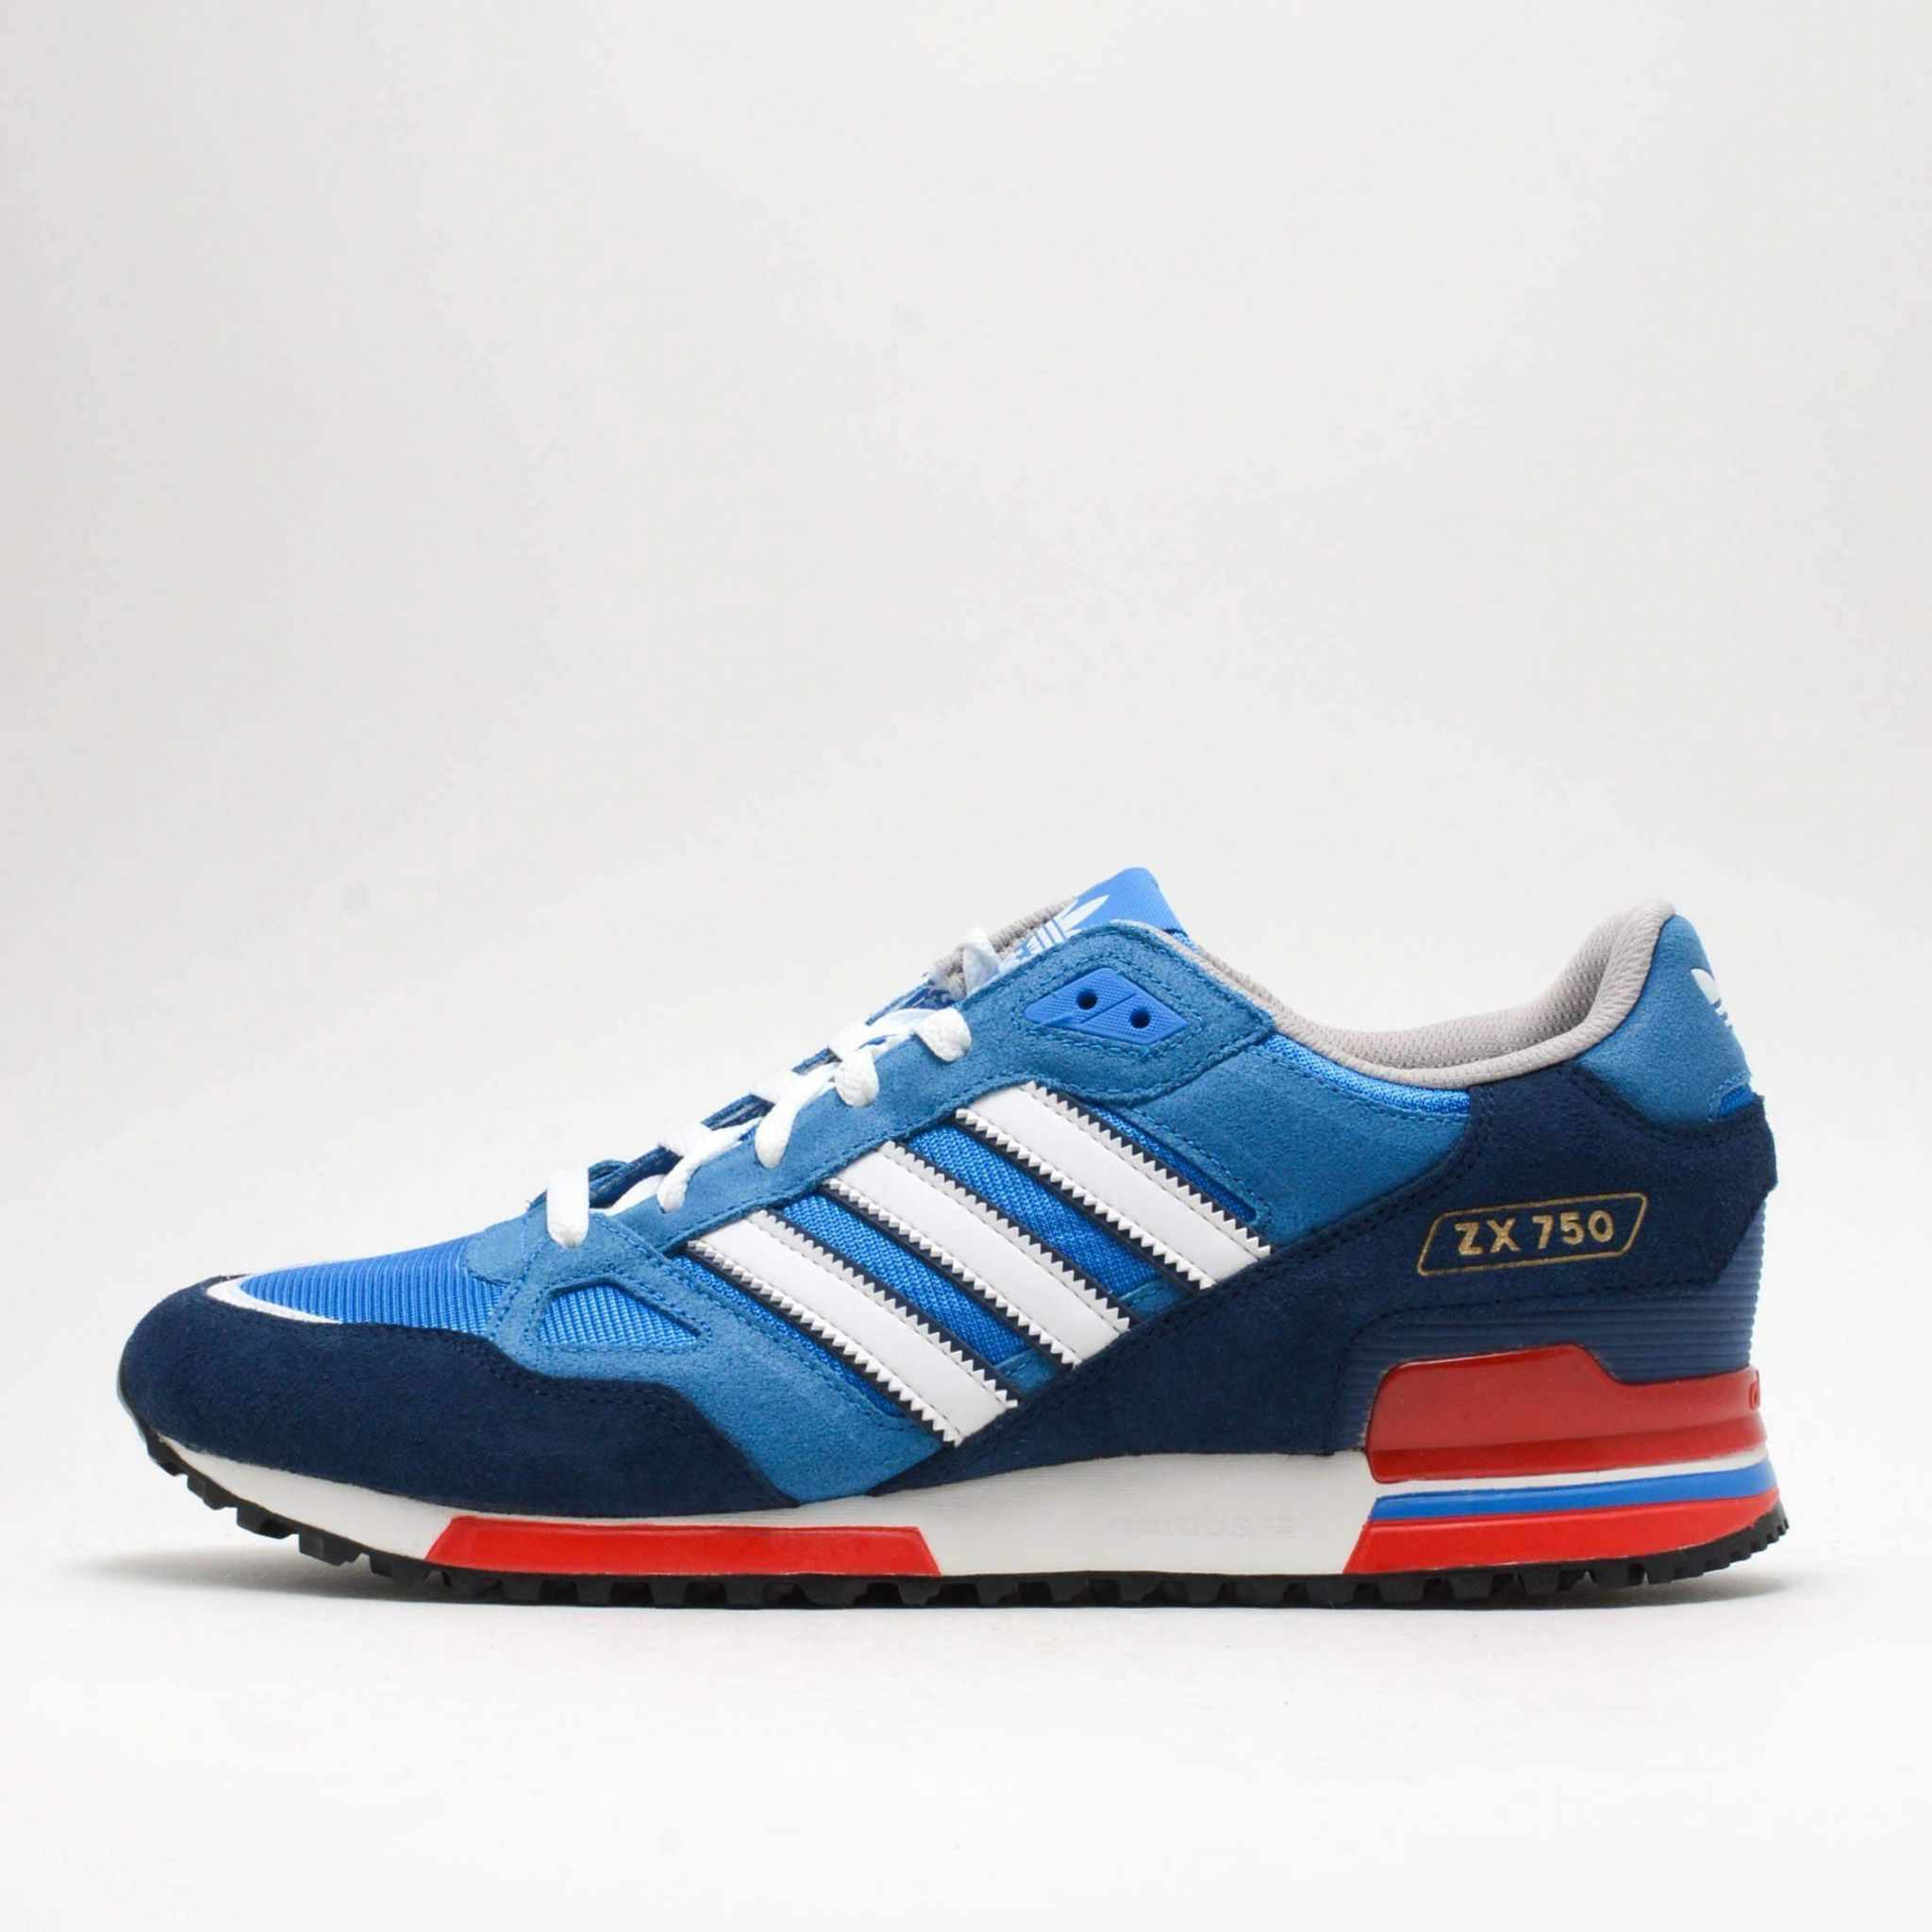 703f2b969d3e1 Adidas Originals ZX750 Mens Running Trainer Shoes Blue